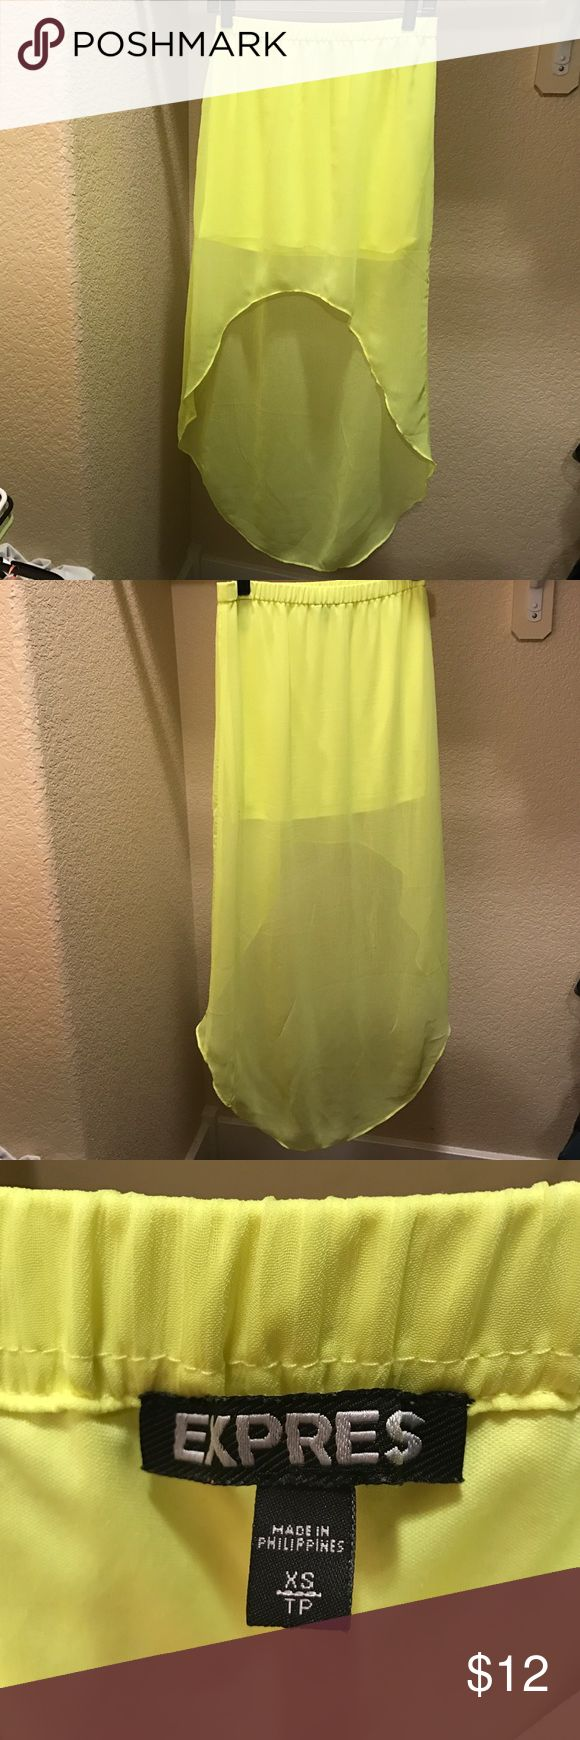 Bright neon yellow Epress high low skirt size XS Bright neon yellow Express high low skirt. Pairs well with a black ribbed tank top and sandals. Perfect for tropical destinations. Made from 100% polyester. No snags or stains. Great condition. Express Skirts High Low